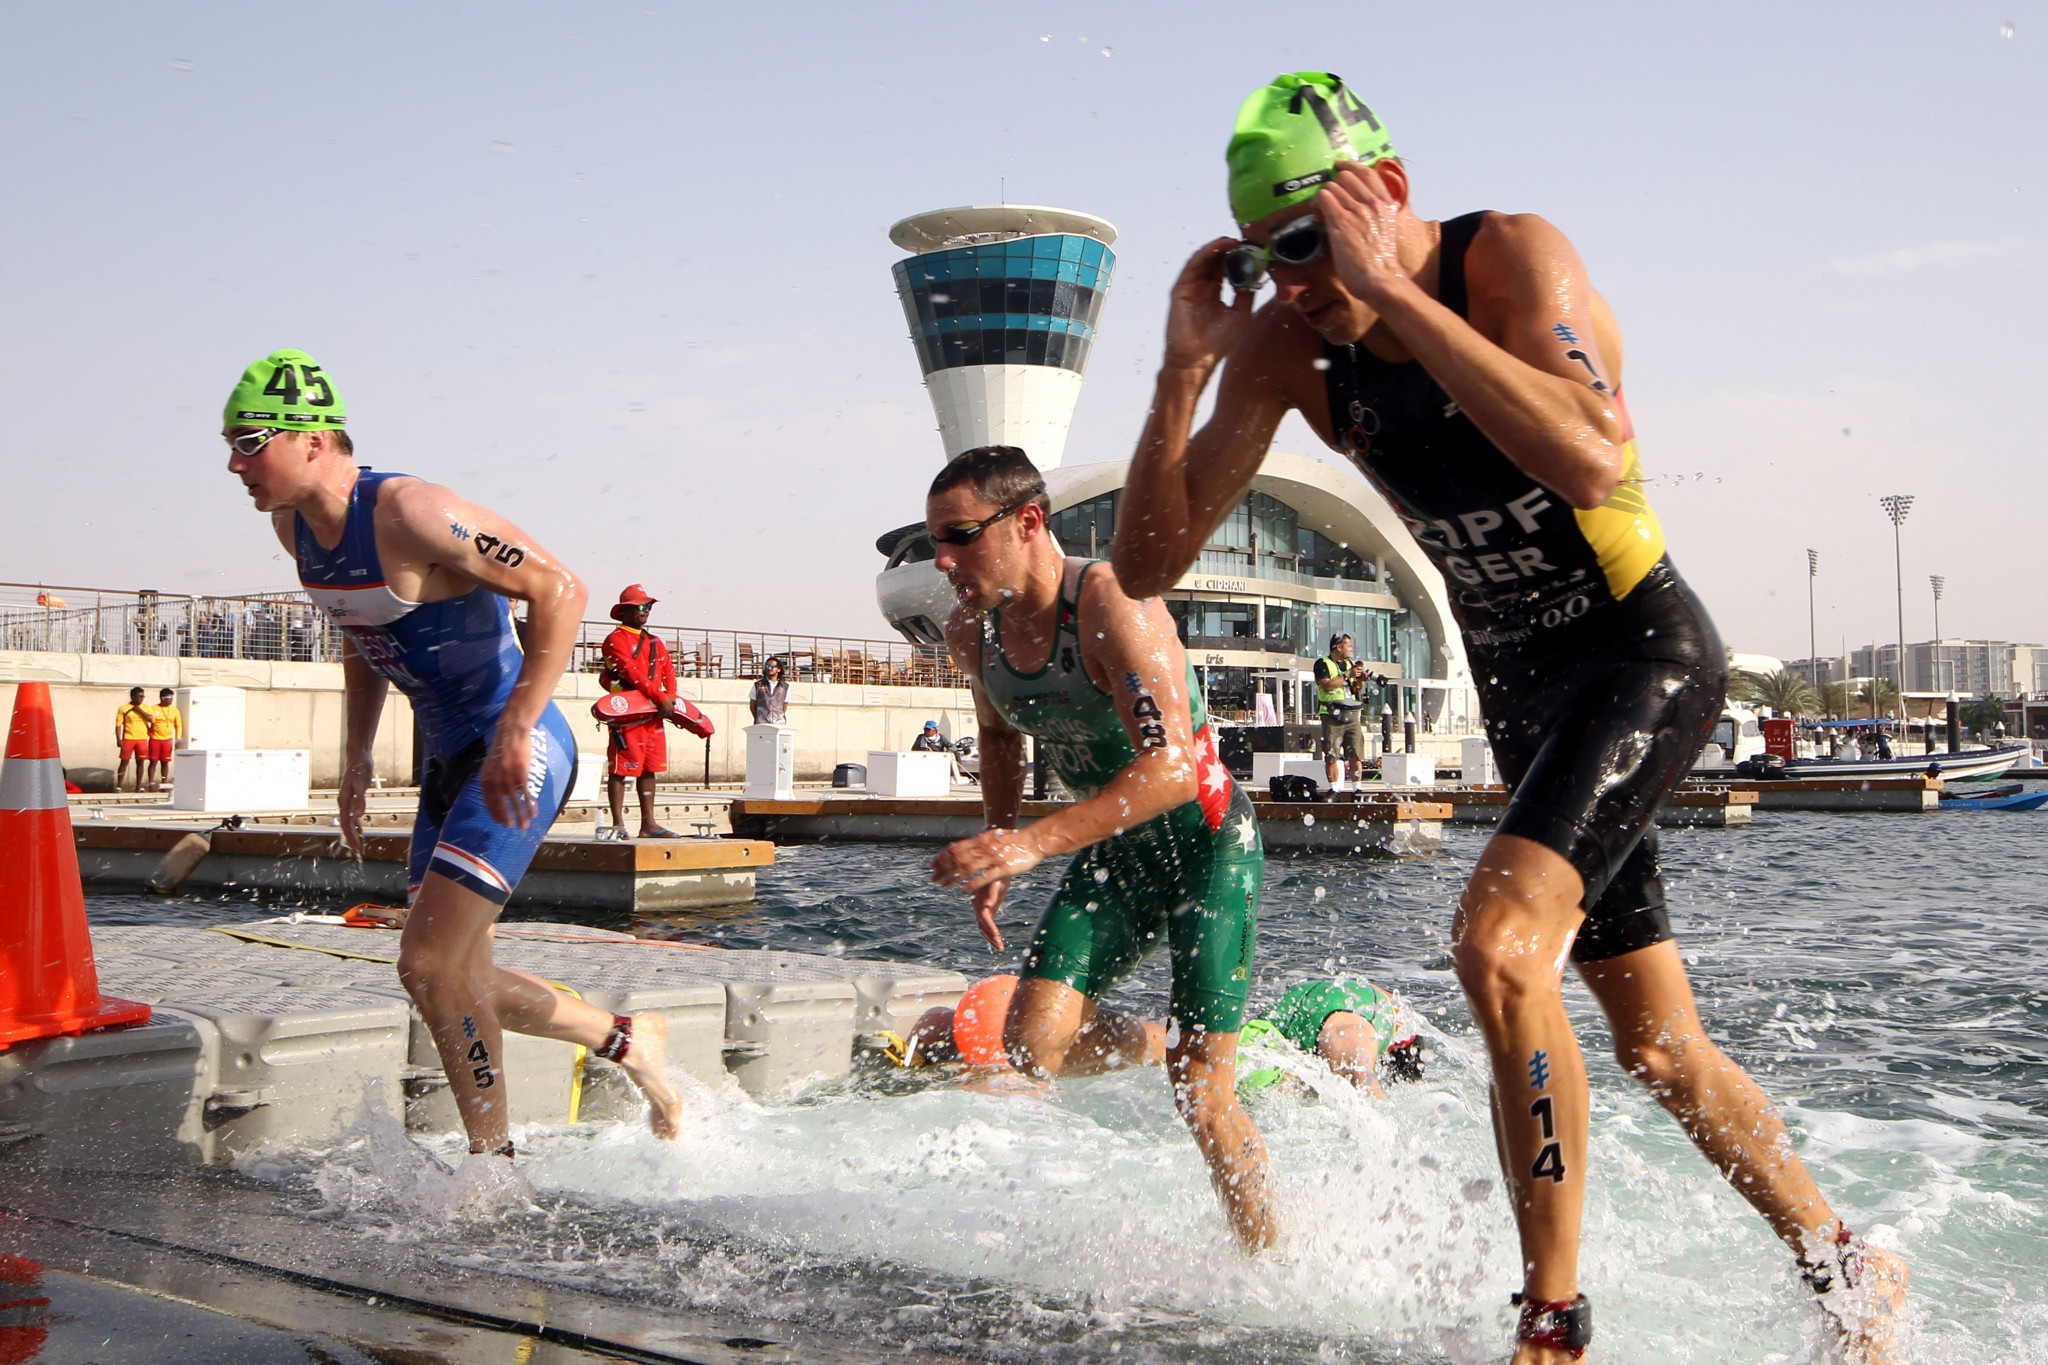 Organisers of the World Triathlon Series in Abu Dhabi claimed they will try to reschedule the event for later in March or April ©Getty Images